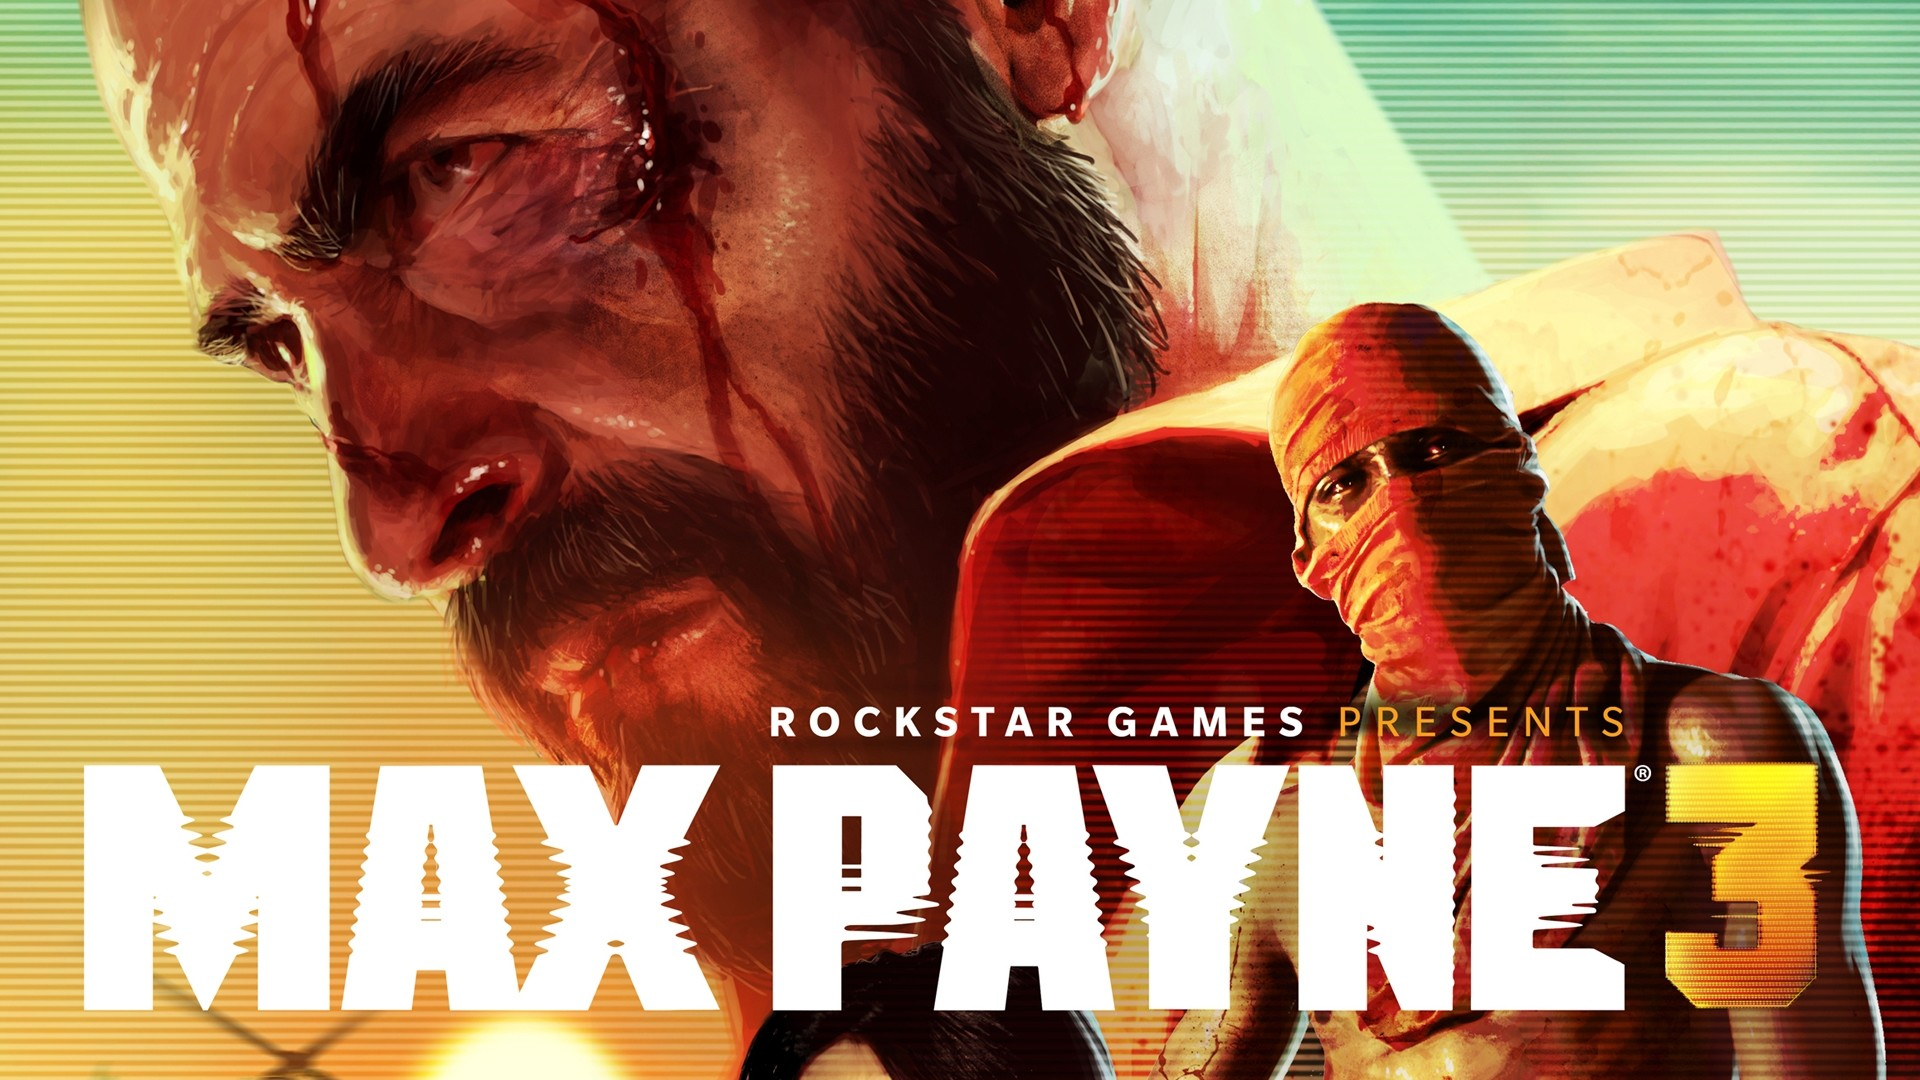 1920x1080 Get the latest max payne 3, face, blood news, pictures and videos and learn  all about max payne 3, face, blood from wallpapers4u.org, your wallpaper  news ...